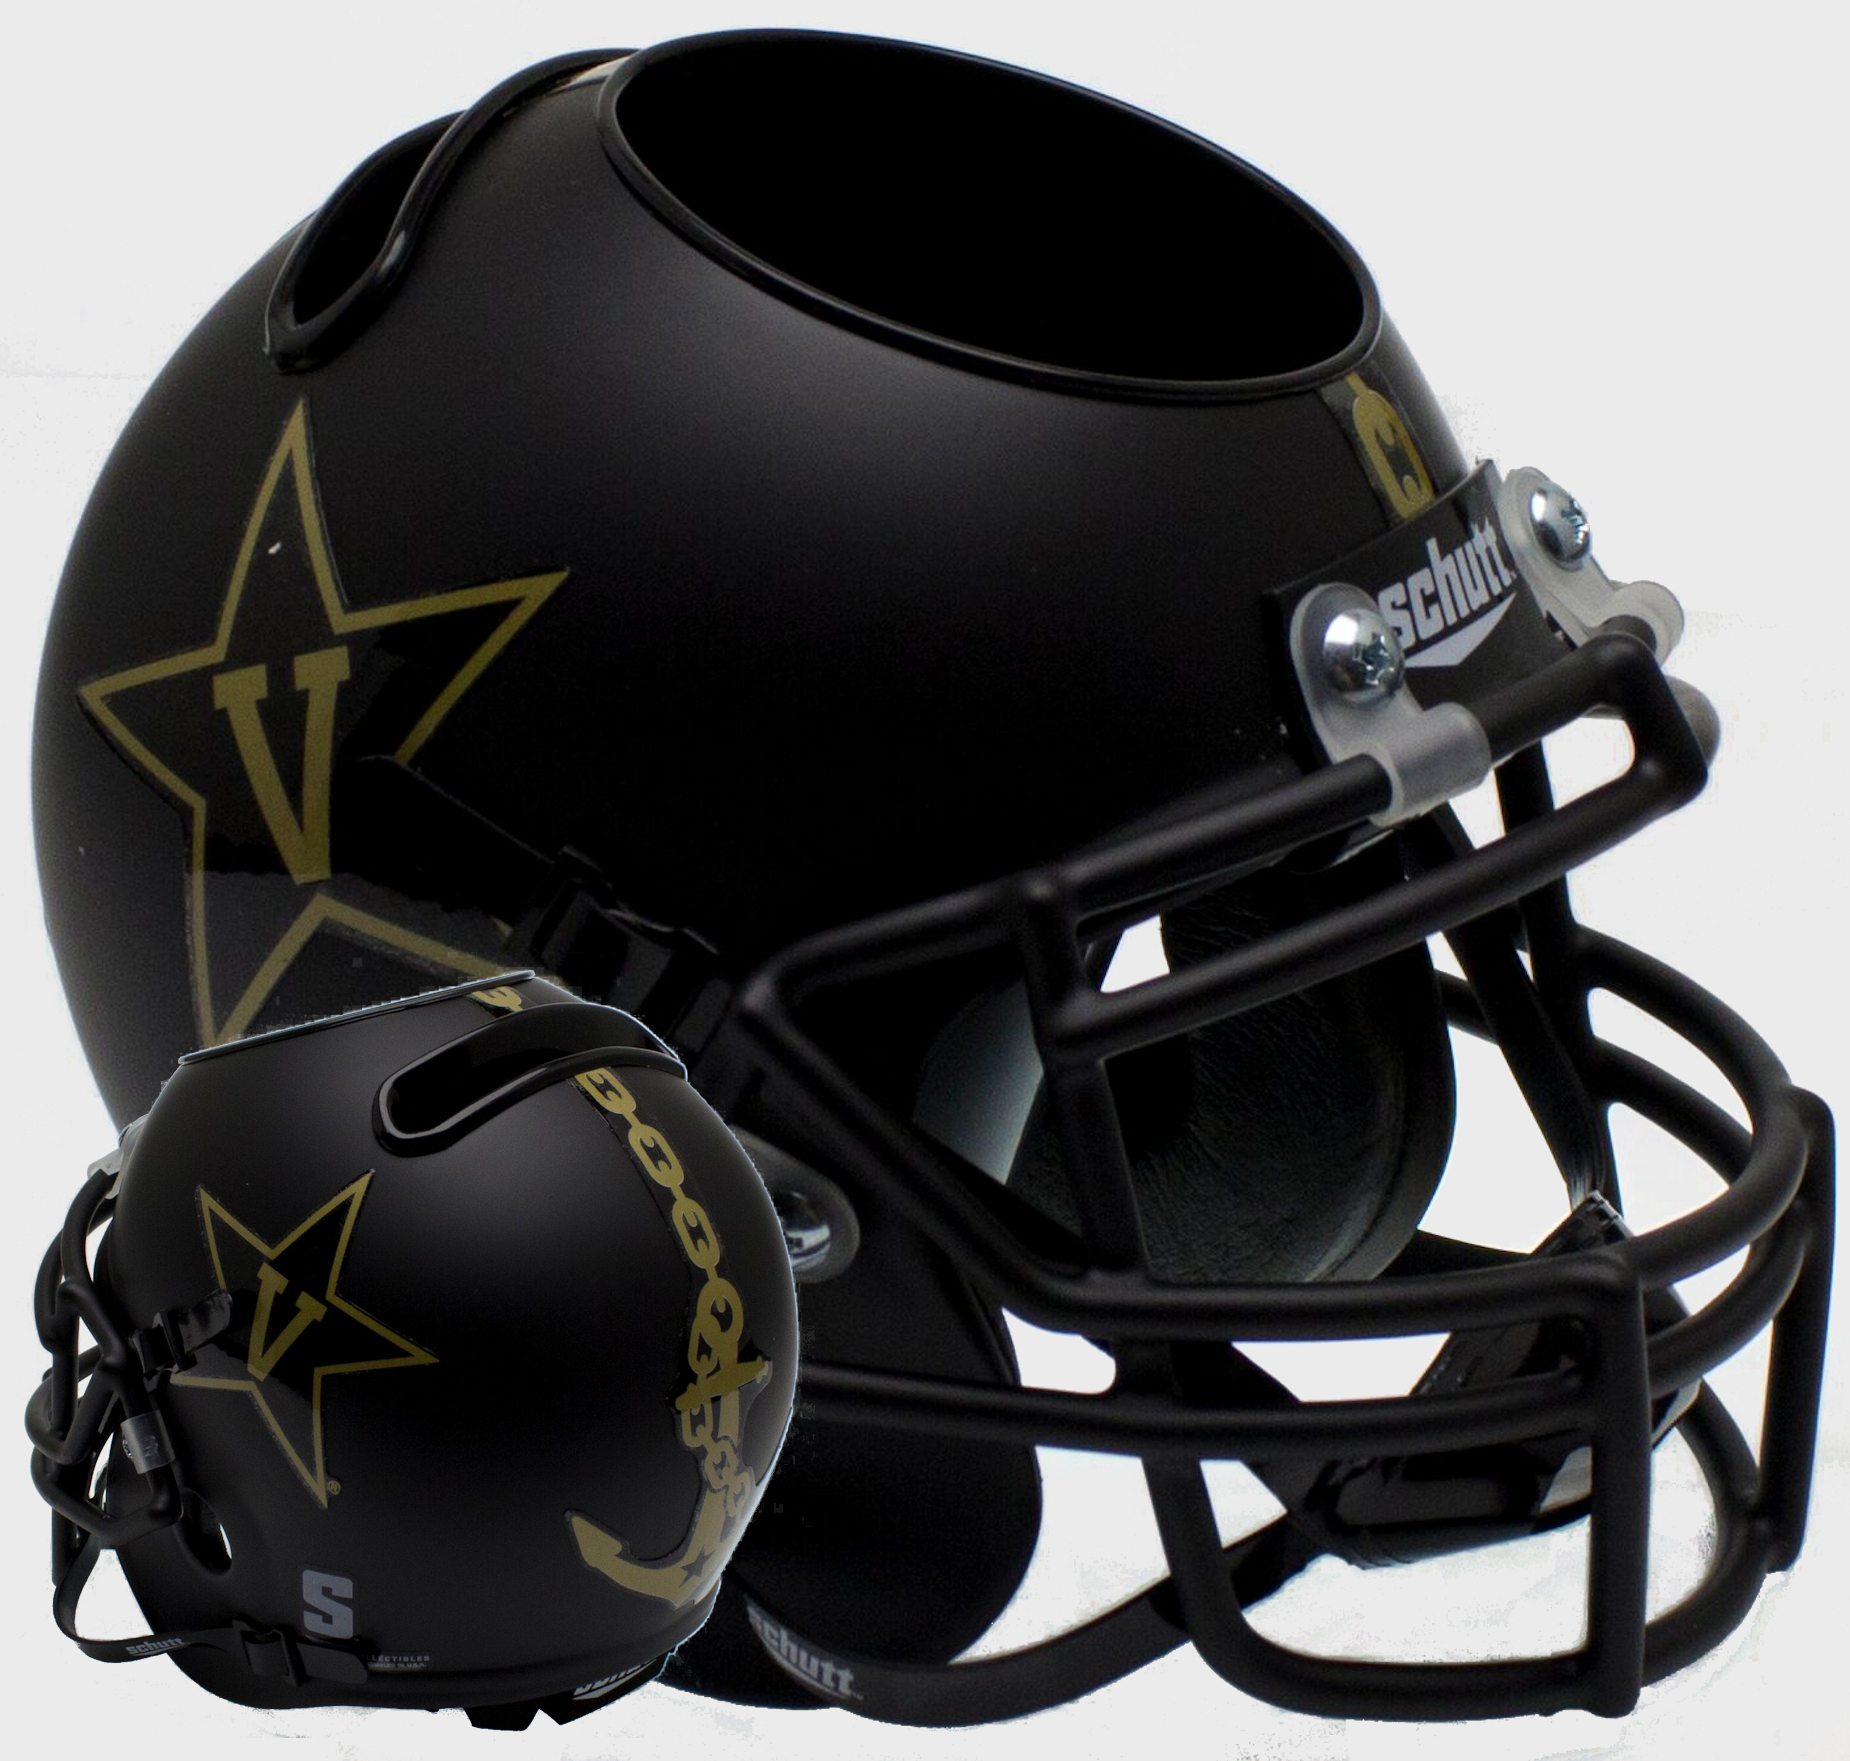 Vanderbilt Commodores Miniature Football Helmet Desk Caddy <B>Matte Black w/Anchor<B>